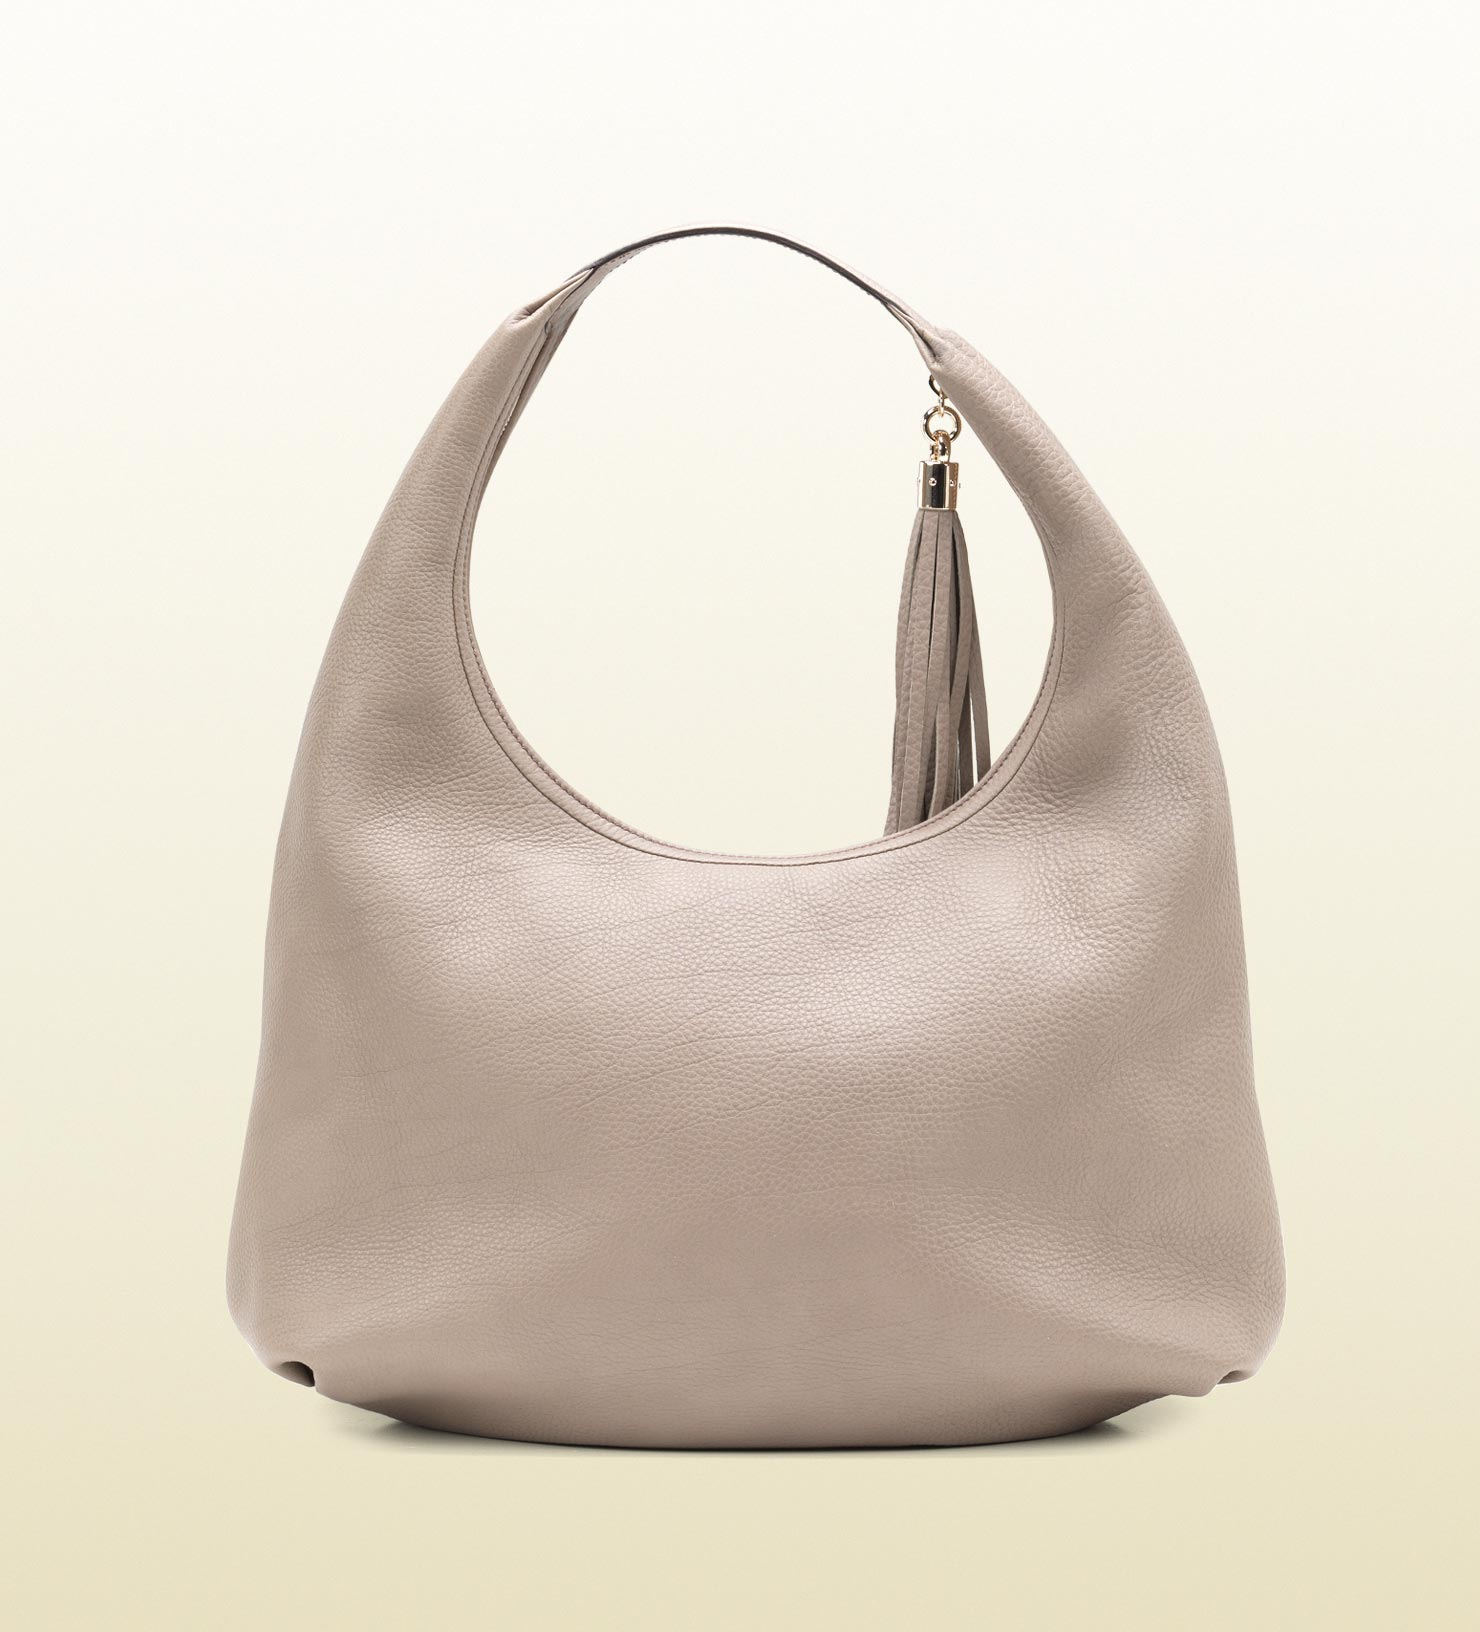 737e18ce868c Lyst - Gucci Soho Fango Colour Leather Hobo in Gray